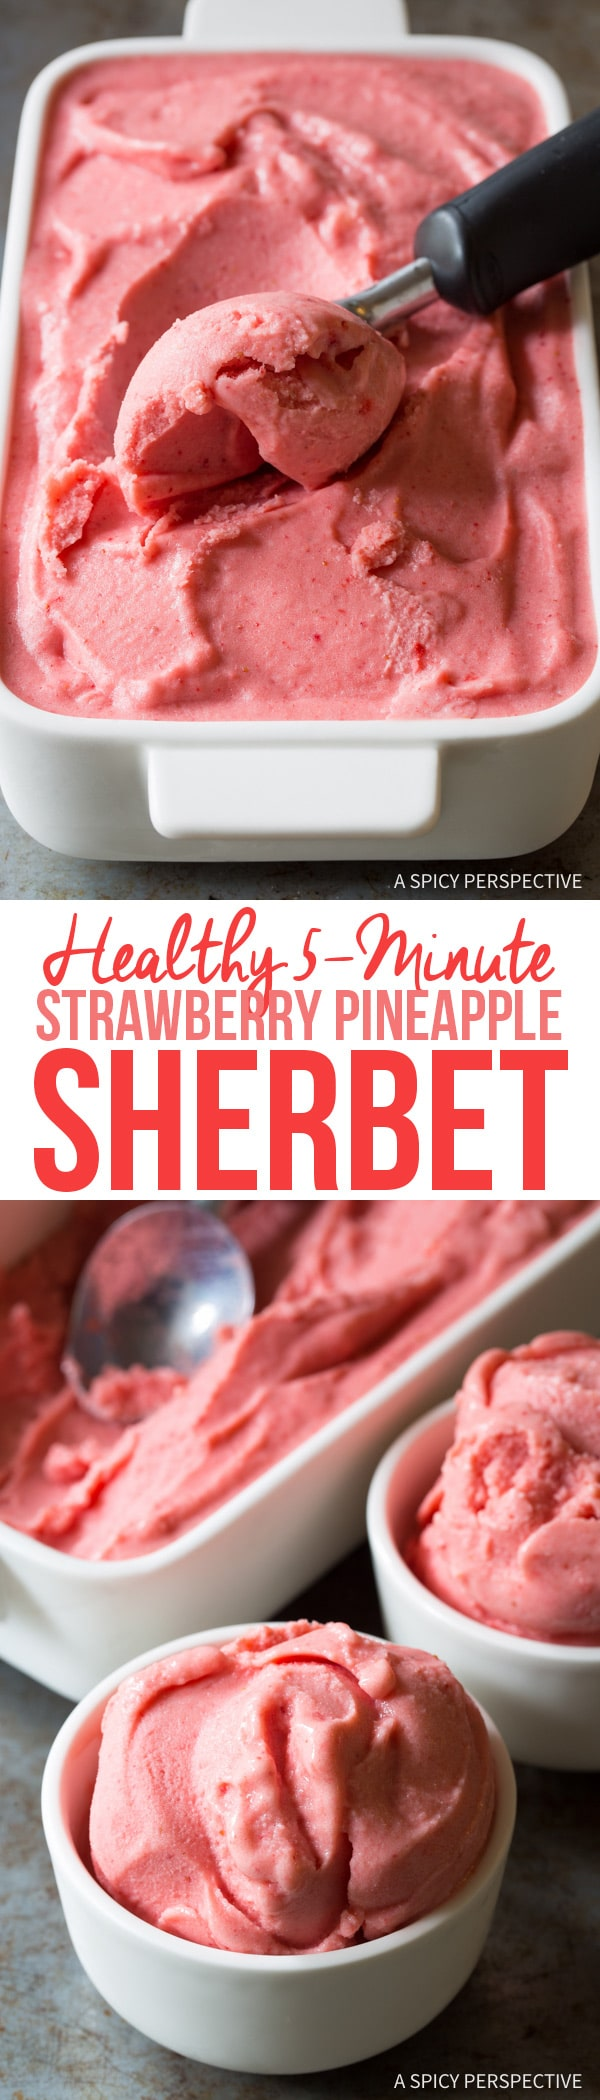 Healthy 5-Minute Strawberry Pineapple Sherbet Recipe